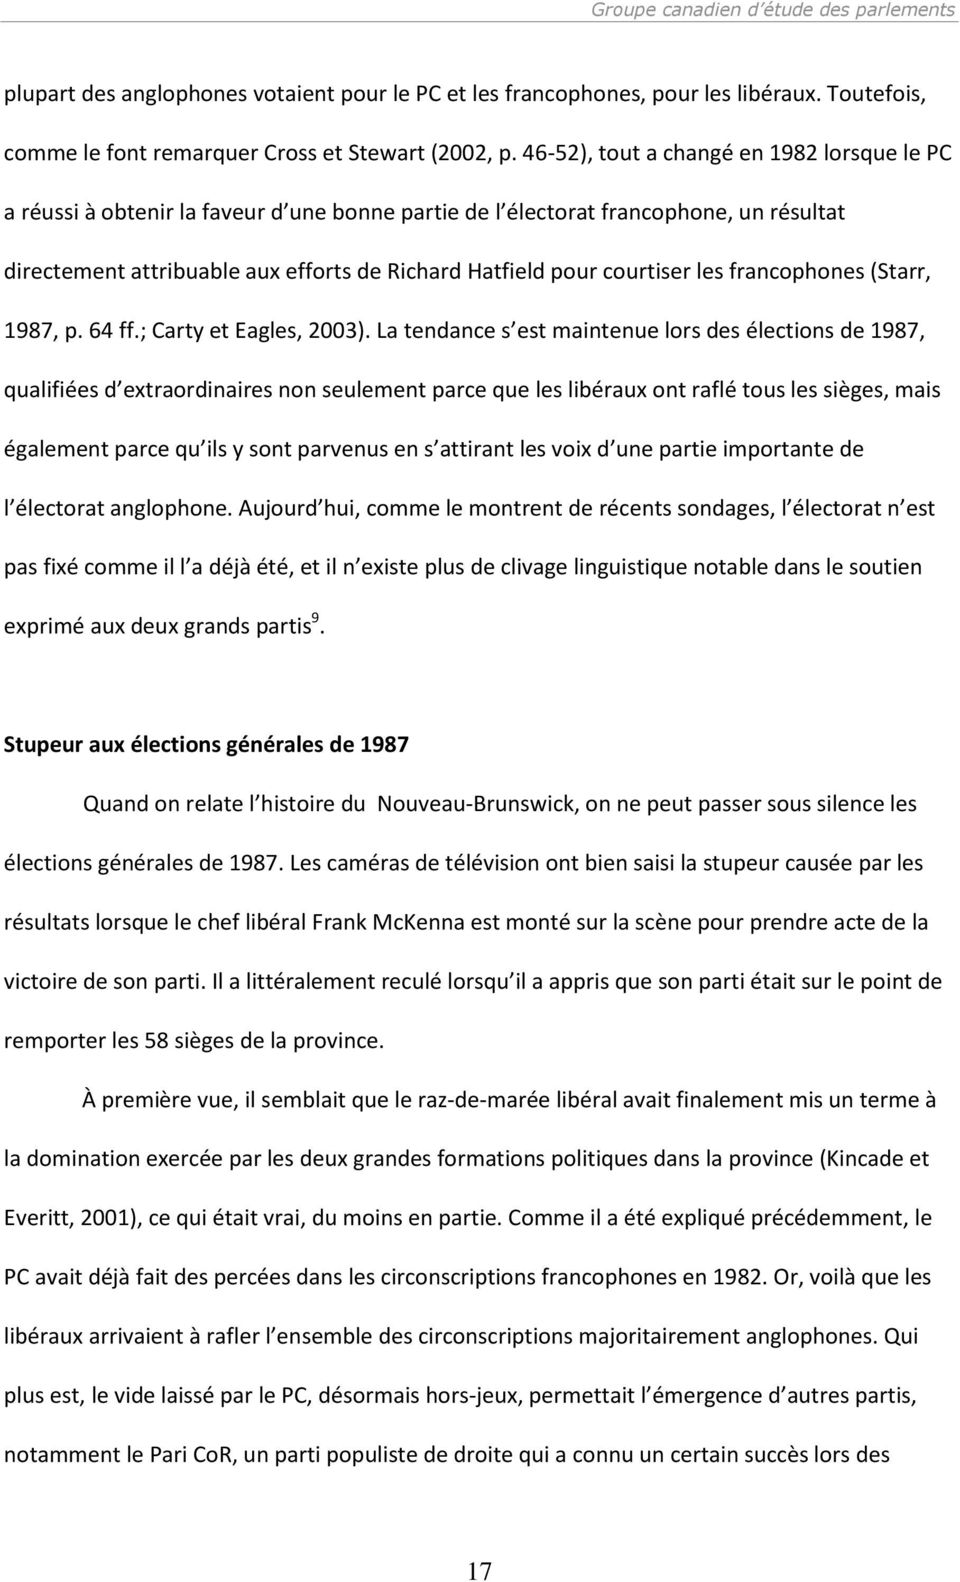 courtiser les francophones (Starr, 1987, p. 64 ff.; Carty et Eagles, 2003).